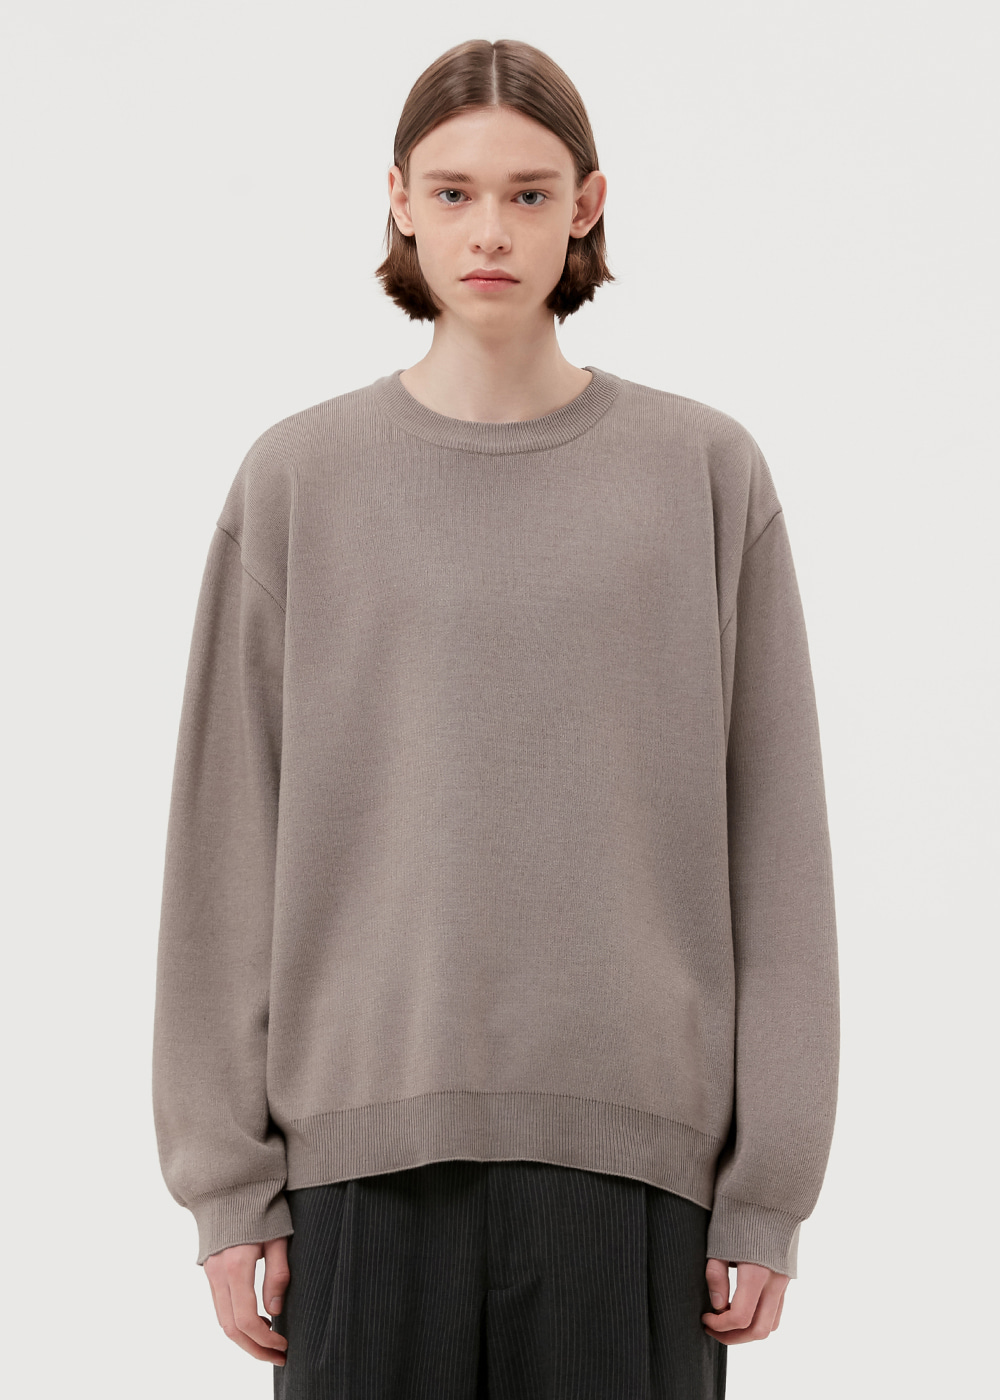 WOOL CREWNECK KNIT [BROWN]